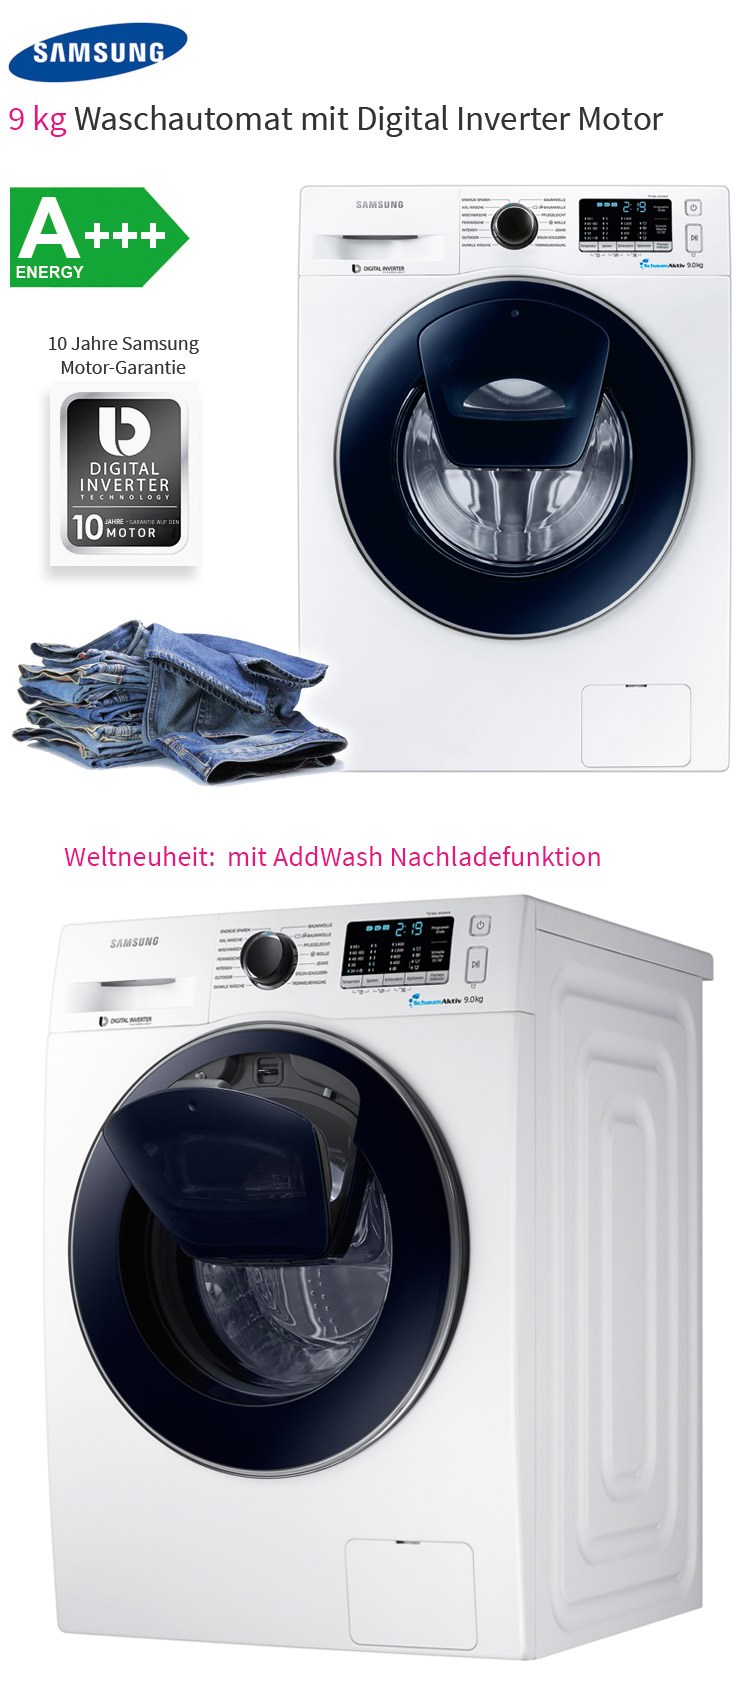 samsung 9 kg addwash waschmaschine a nachlade funktion schaumaktiv frontlader ebay. Black Bedroom Furniture Sets. Home Design Ideas